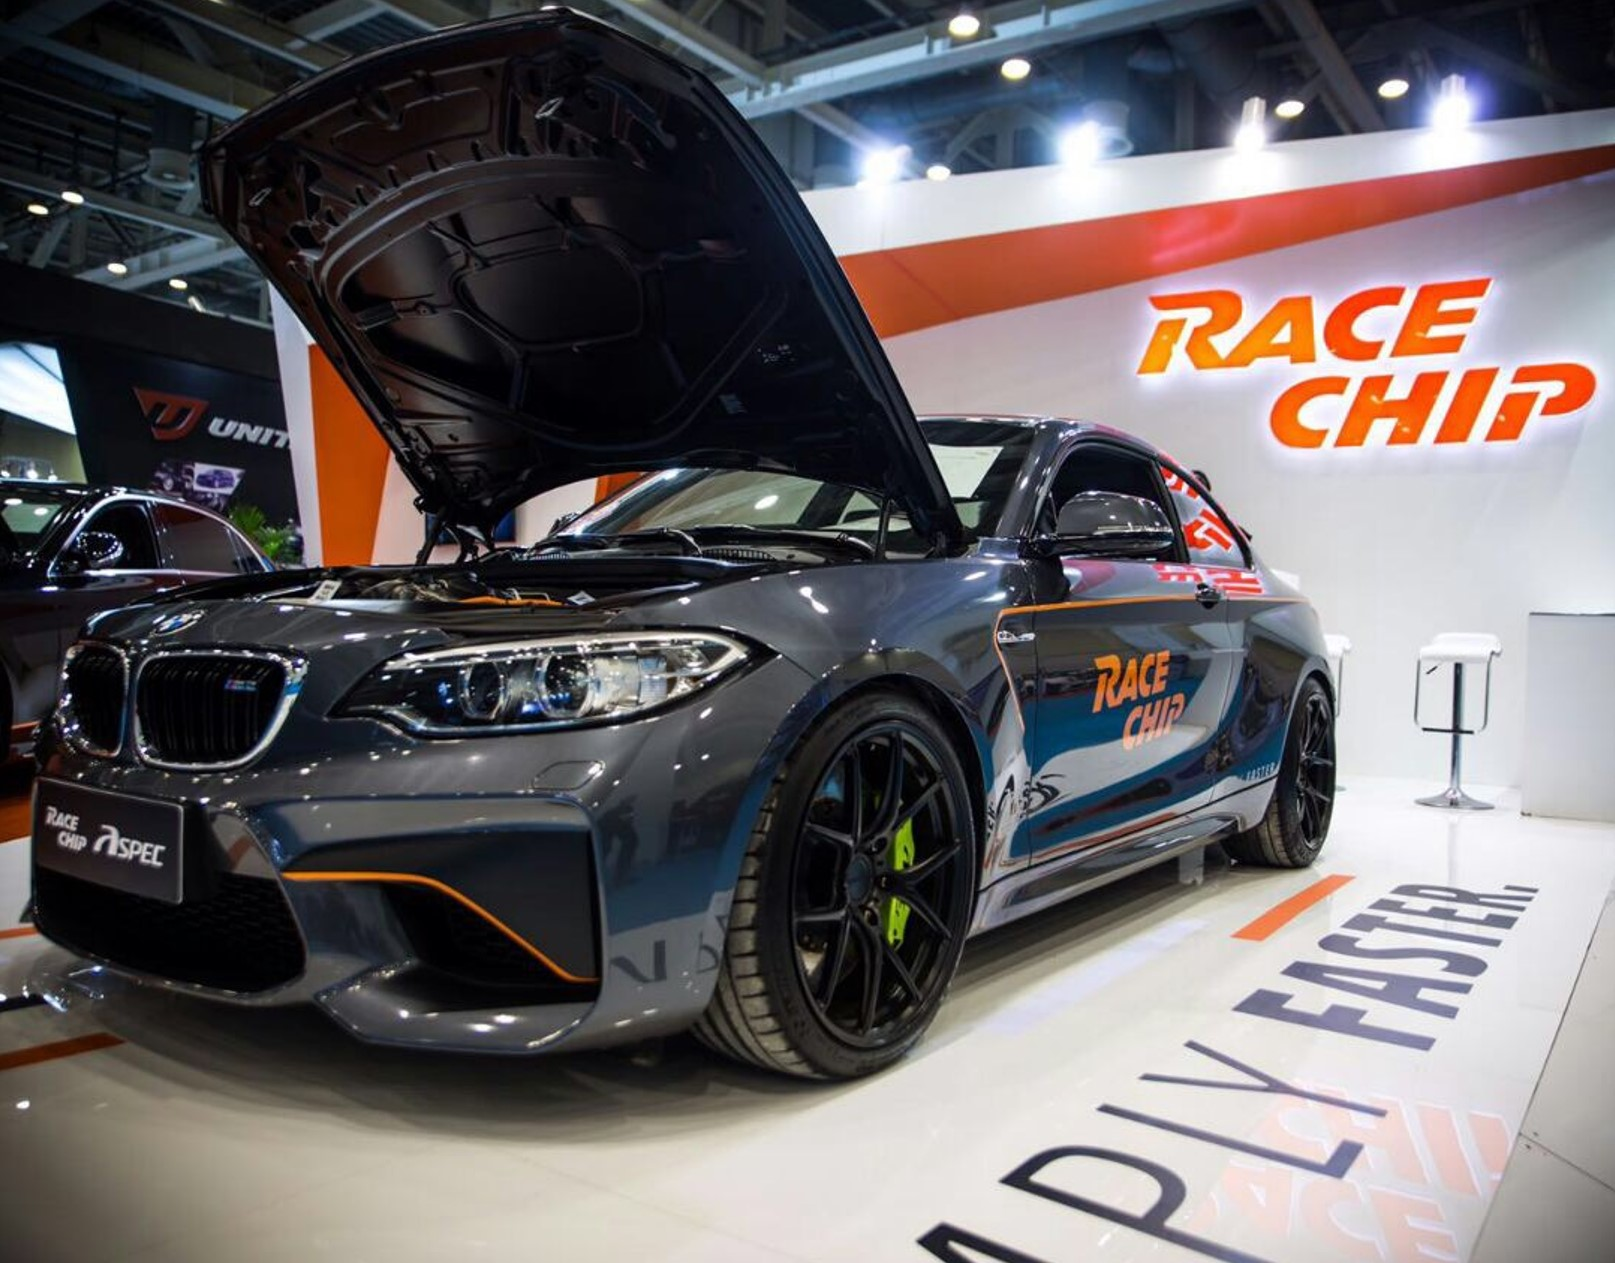 RaceChip Chiptuning Importateur France ADP Performance